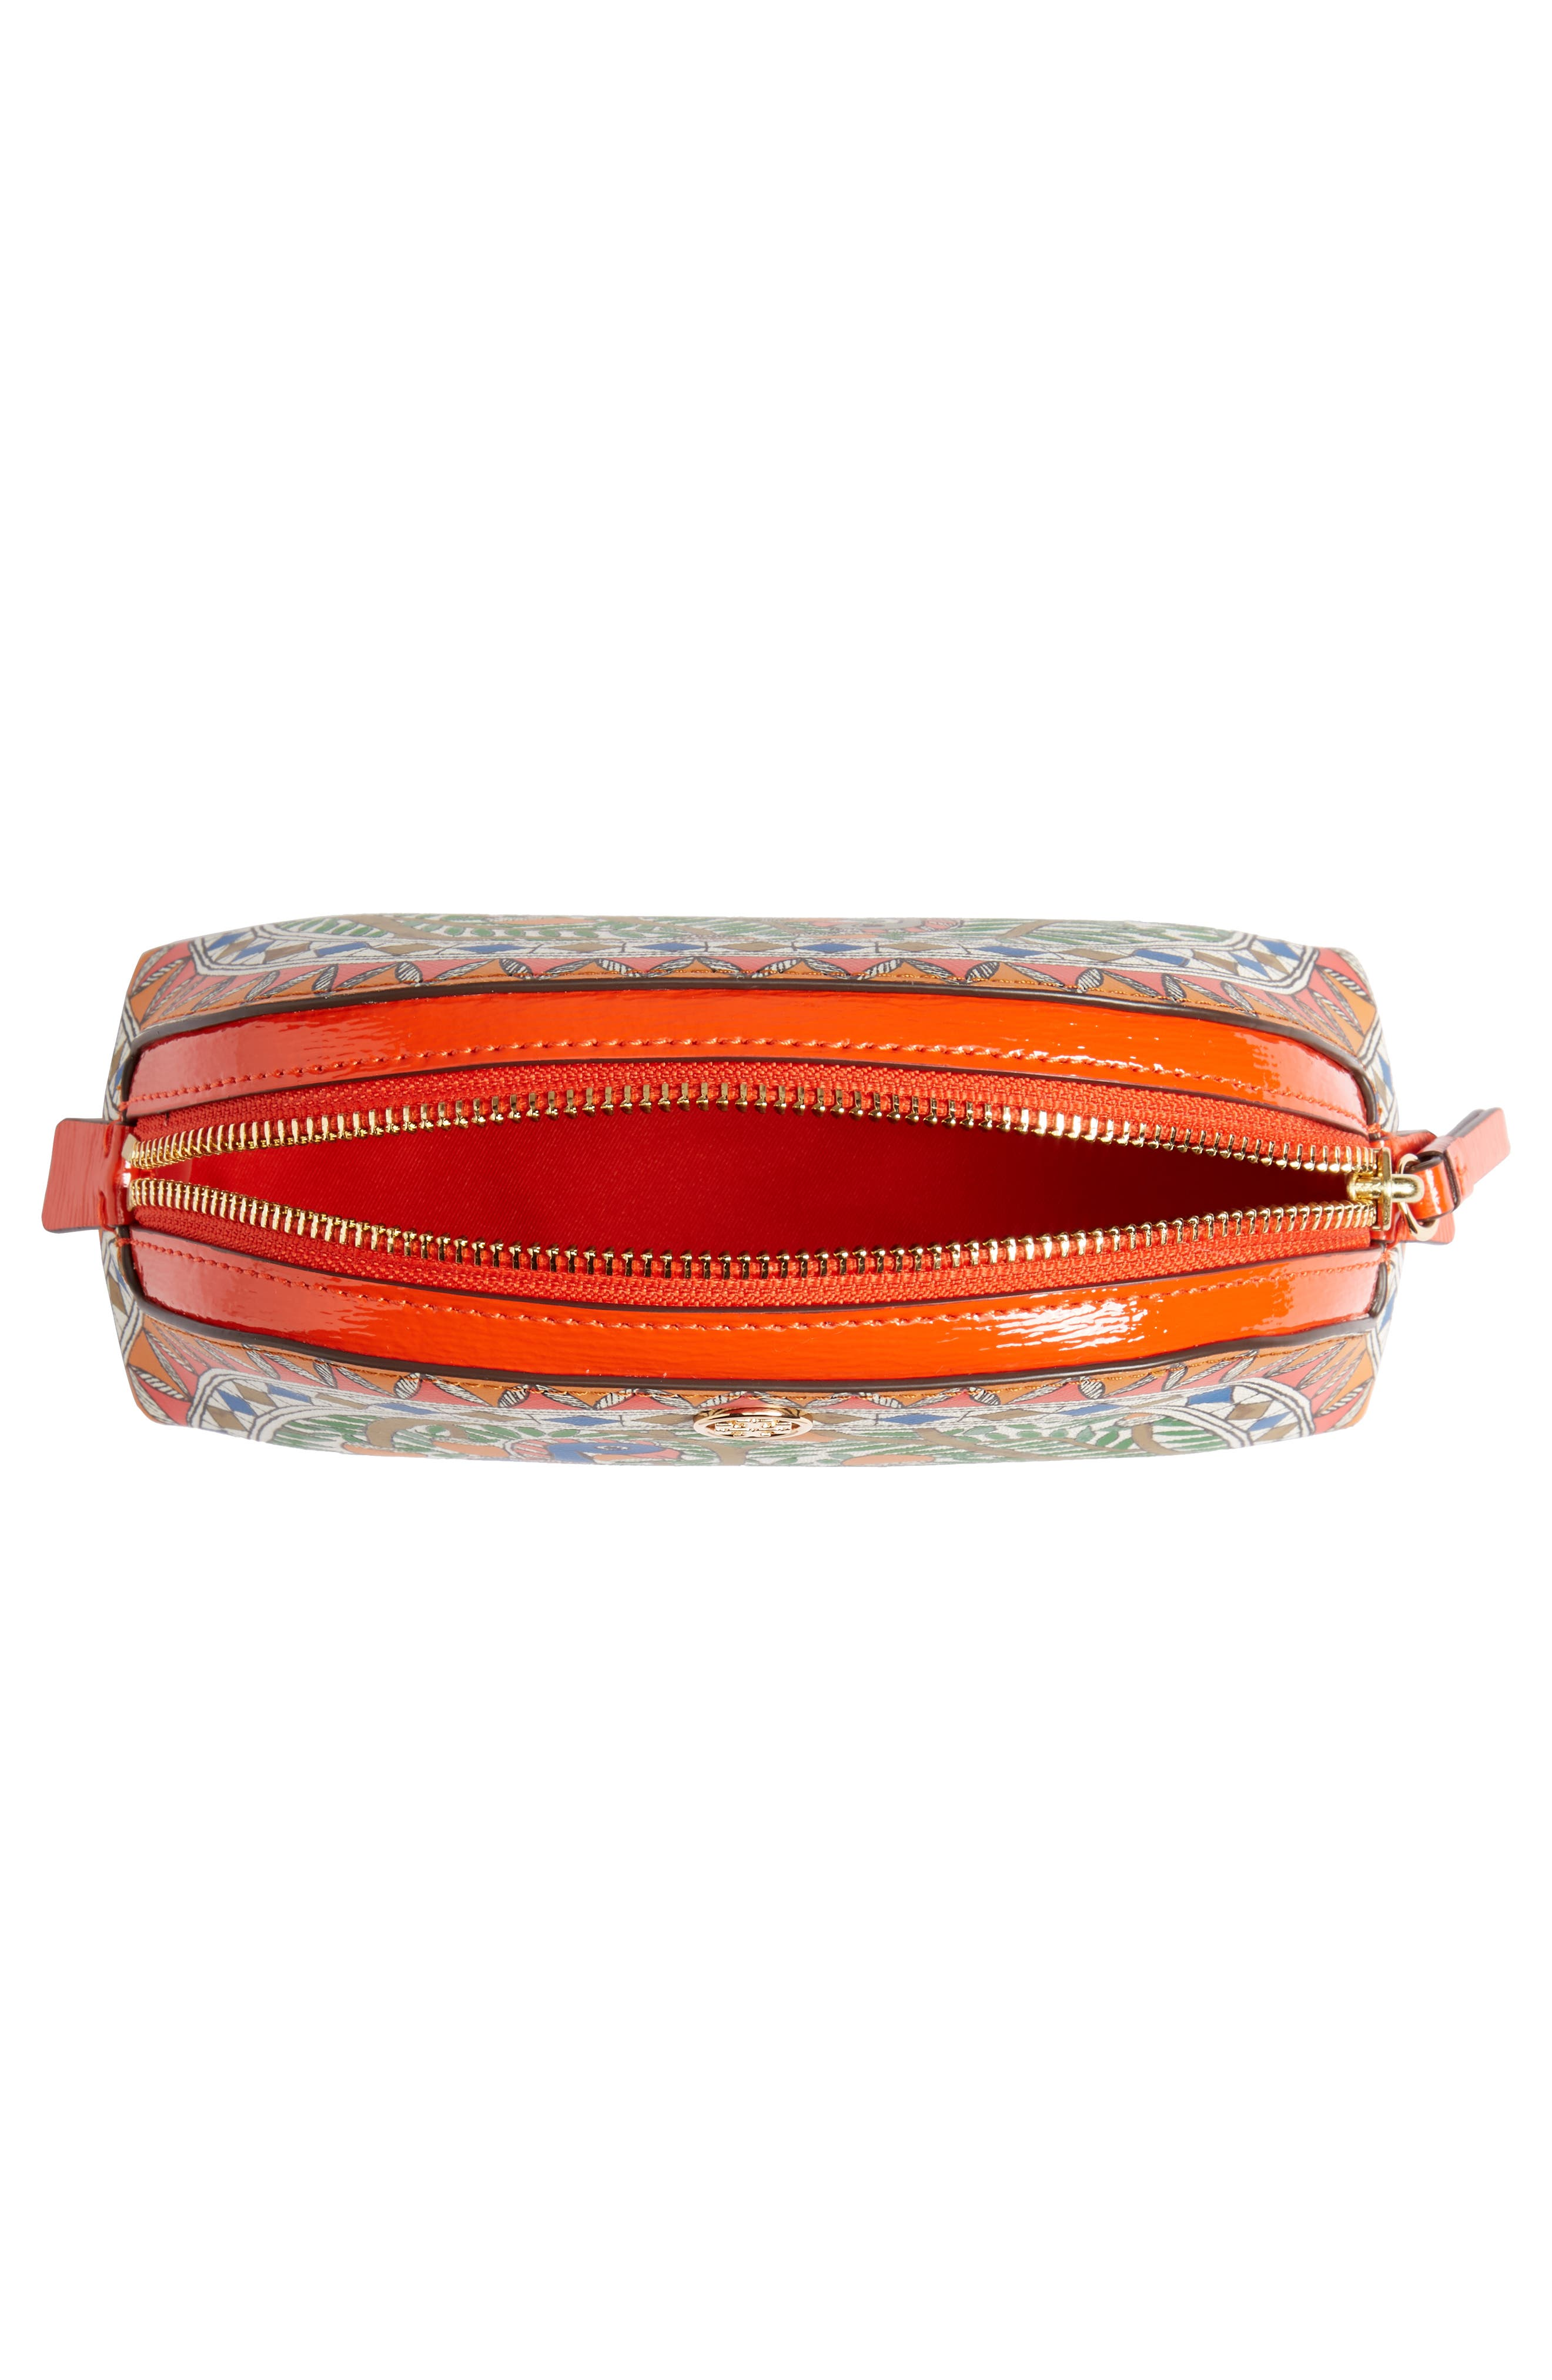 TORY BURCH,                             Small Robinson Cosmetic Case,                             Alternate thumbnail 3, color,                             SOMETHING WILD